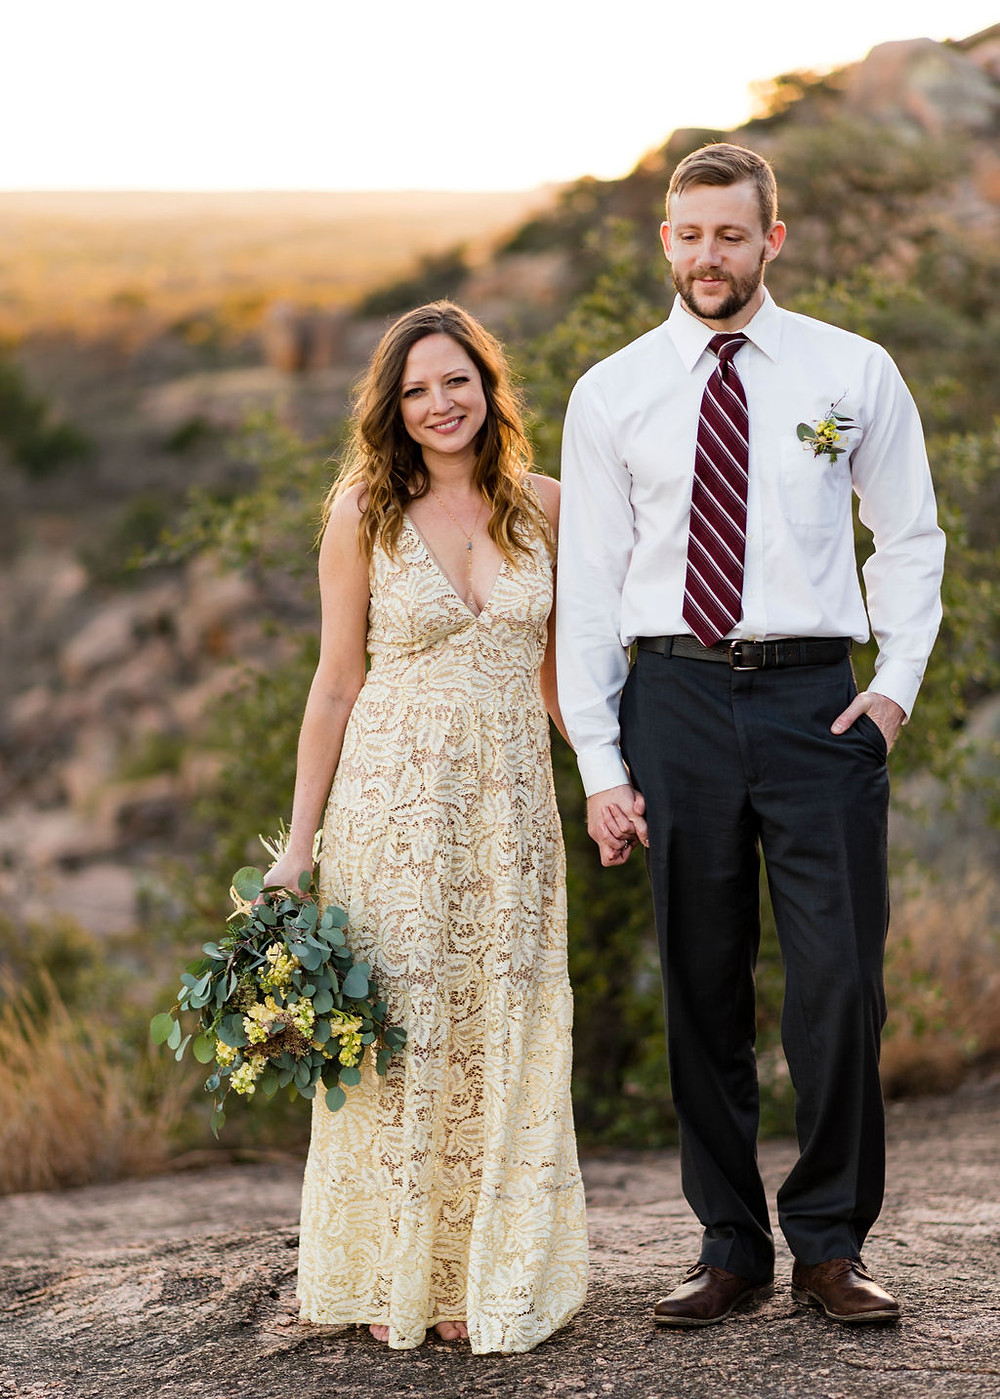 bride and groom stand side by side holding hands. bride is smiling at the camera while the groom has a shy smile looking towards the bride. They are standing on enchanted rock for their elopement with the texas hill country in the background during golden hour.